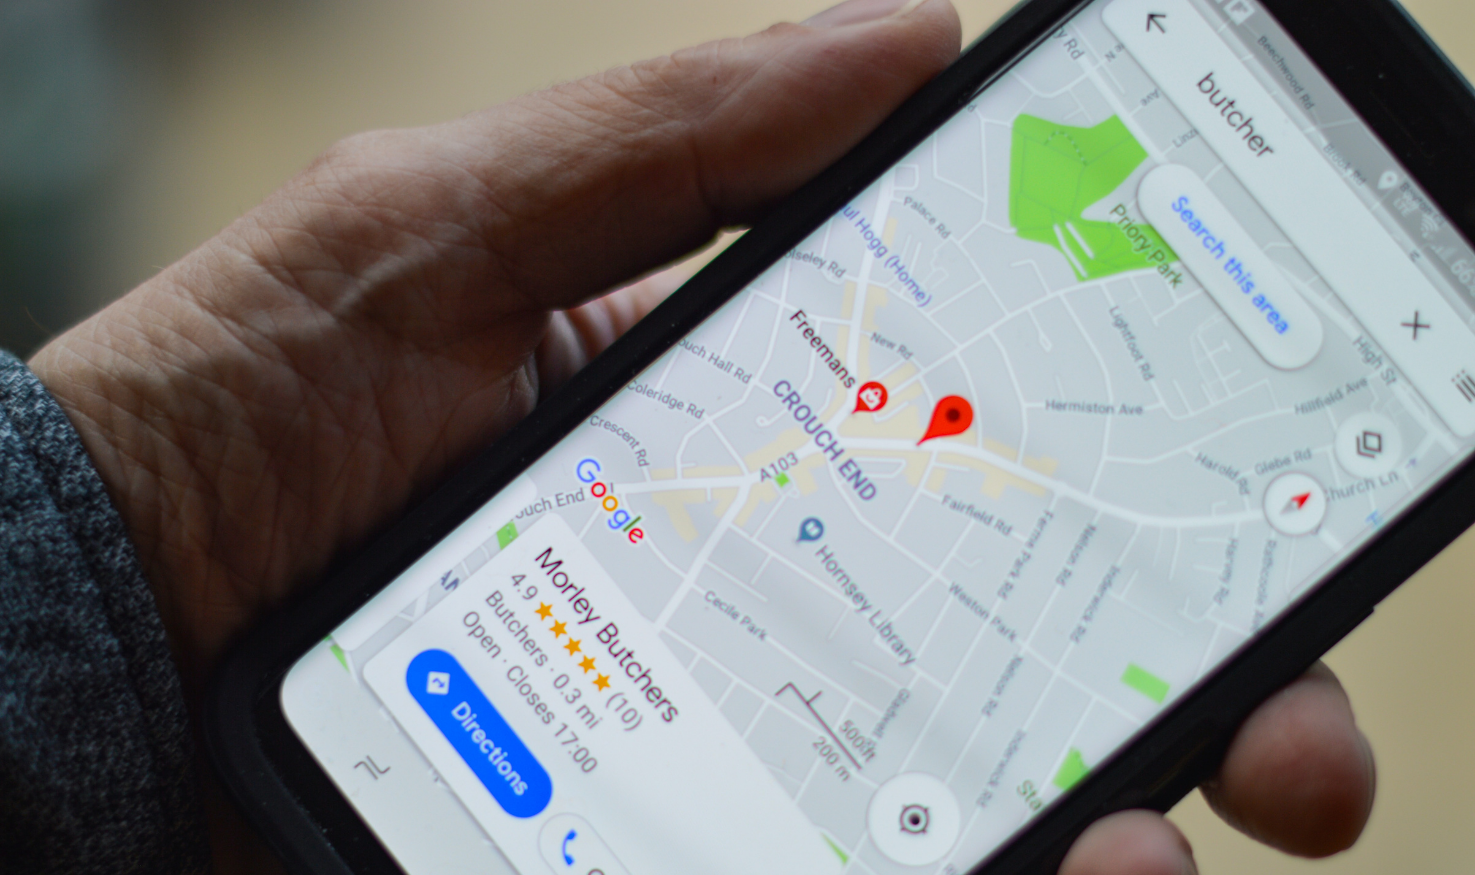 Location services on smartphones